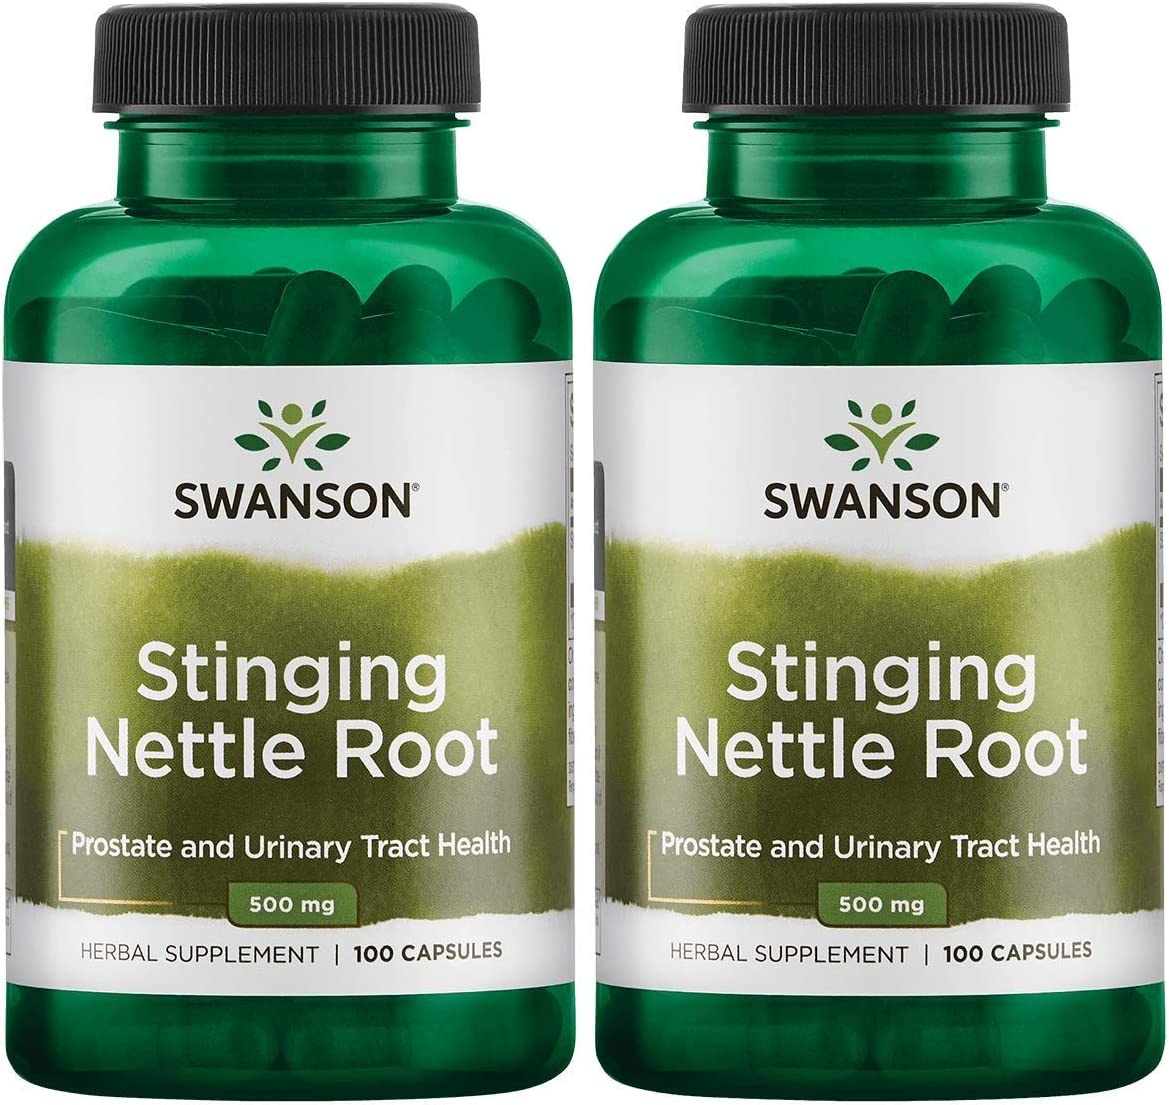 Swanson Stinging Nettle Root Urinary Tract Health Respiratory Health Prostate Support Men s Health Herbal Supplement Urtica dioica Root 500 mg 100 Capsules 2 Pack